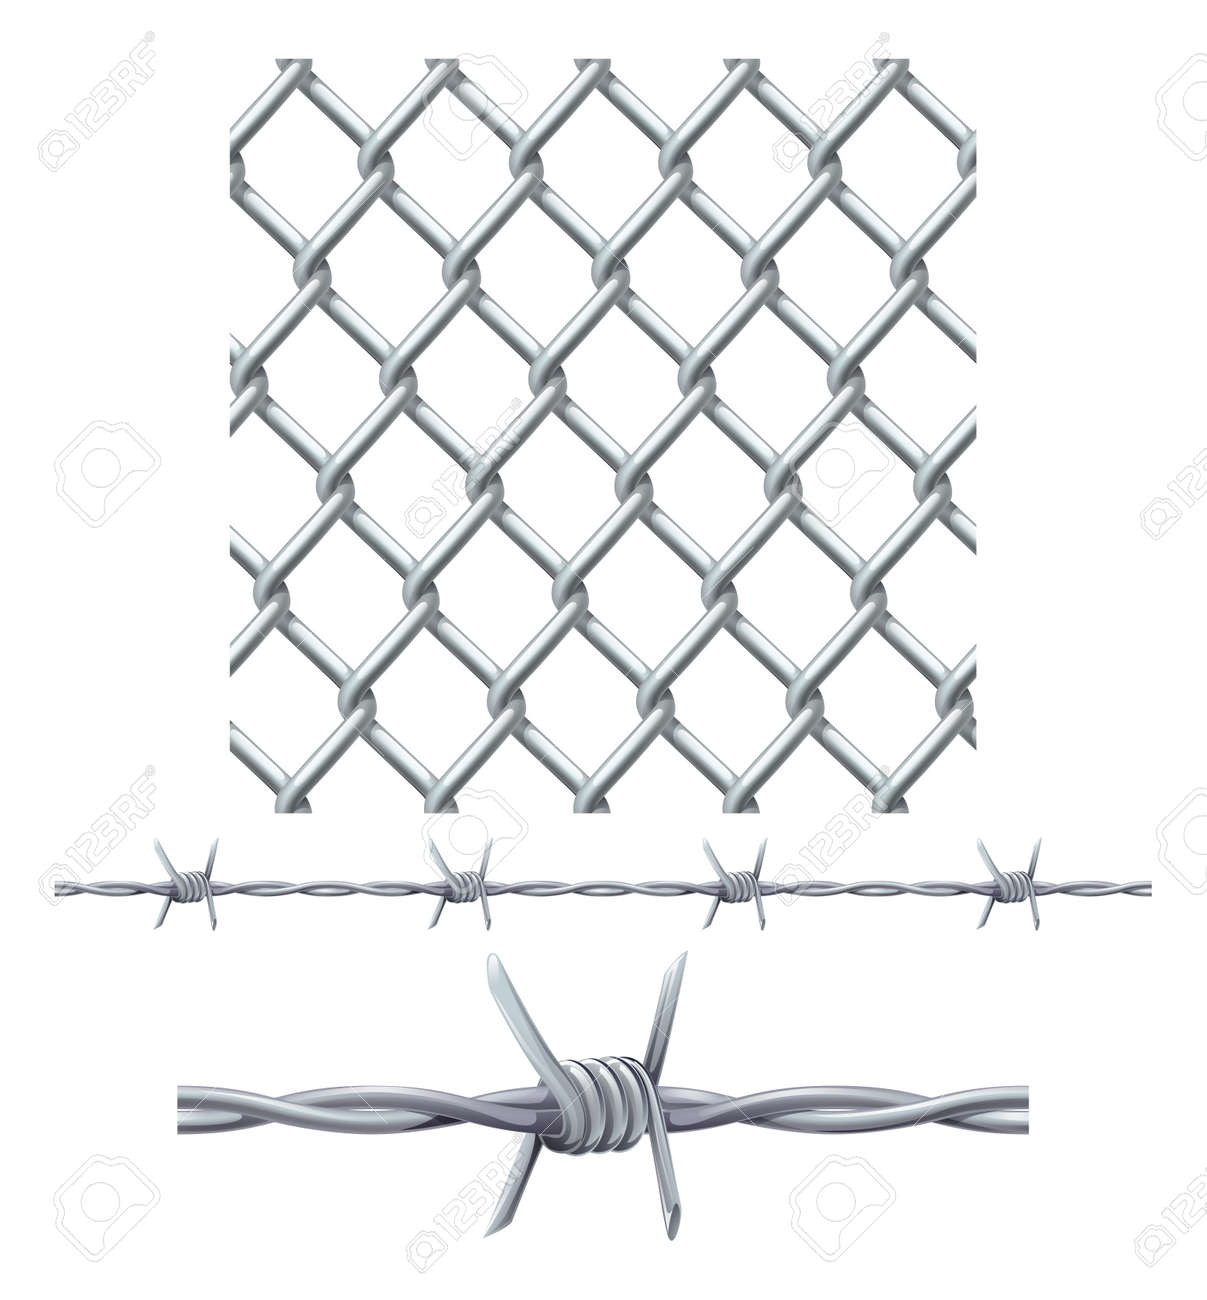 barbed wire diagram a seamless tiling diamond chainlink fence tile and barbed wire a seamless tiling diamond chainlink fence